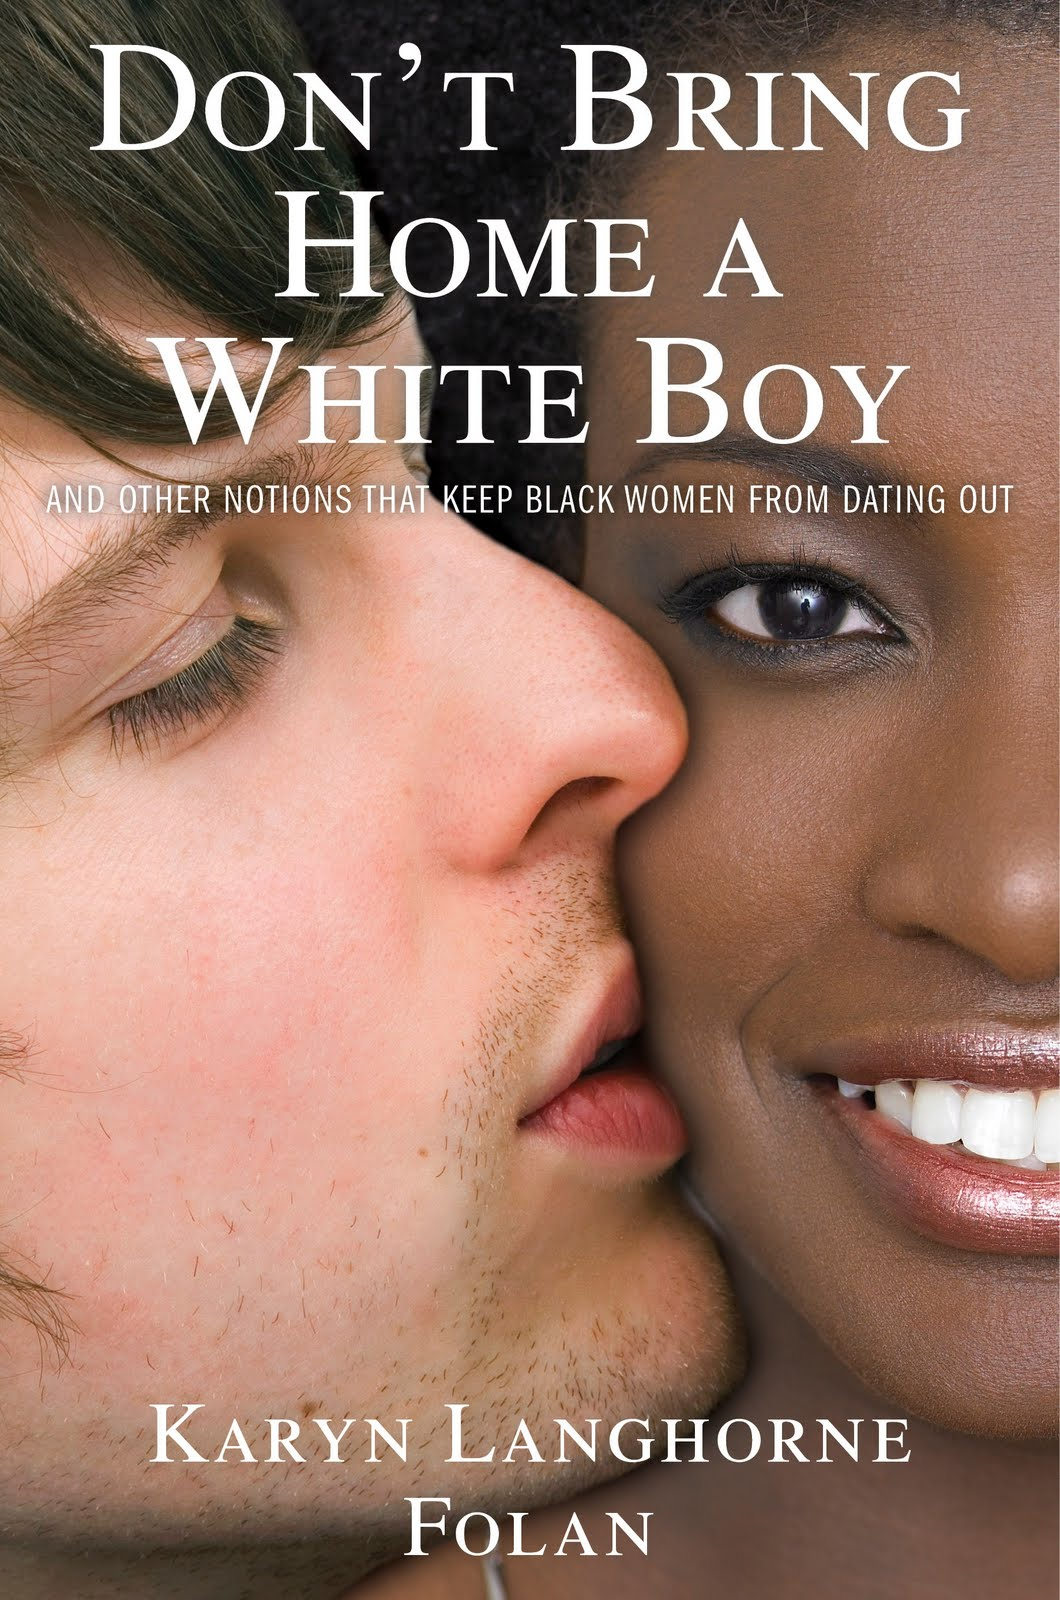 Arguments on interracial dating